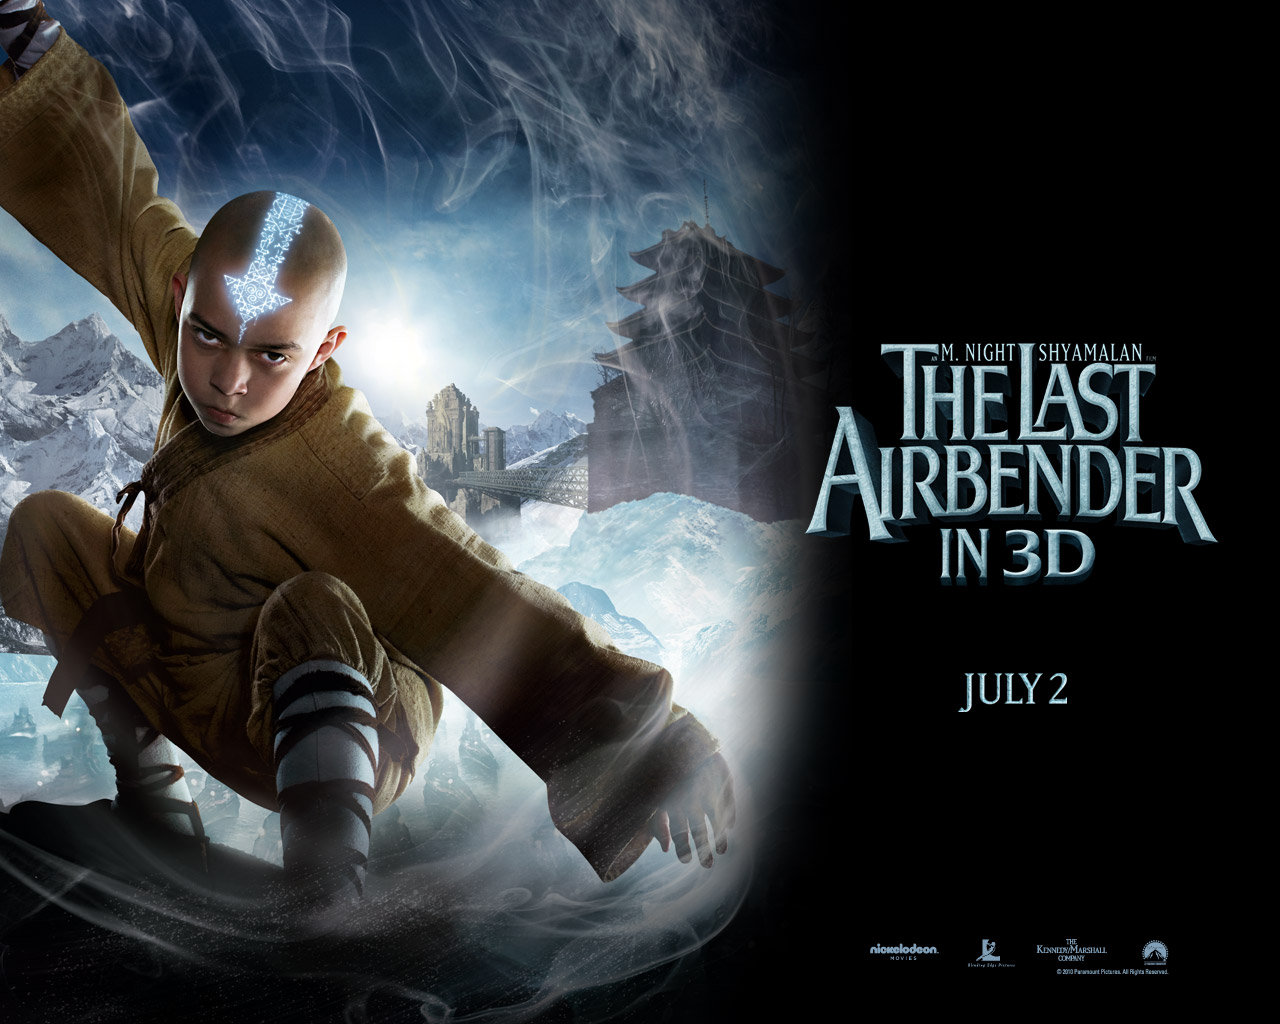 Avatar The Last Airbender Movie 2 18 Widescreen Wallpaper ...  Avatar The Last Airbender 2 Movie